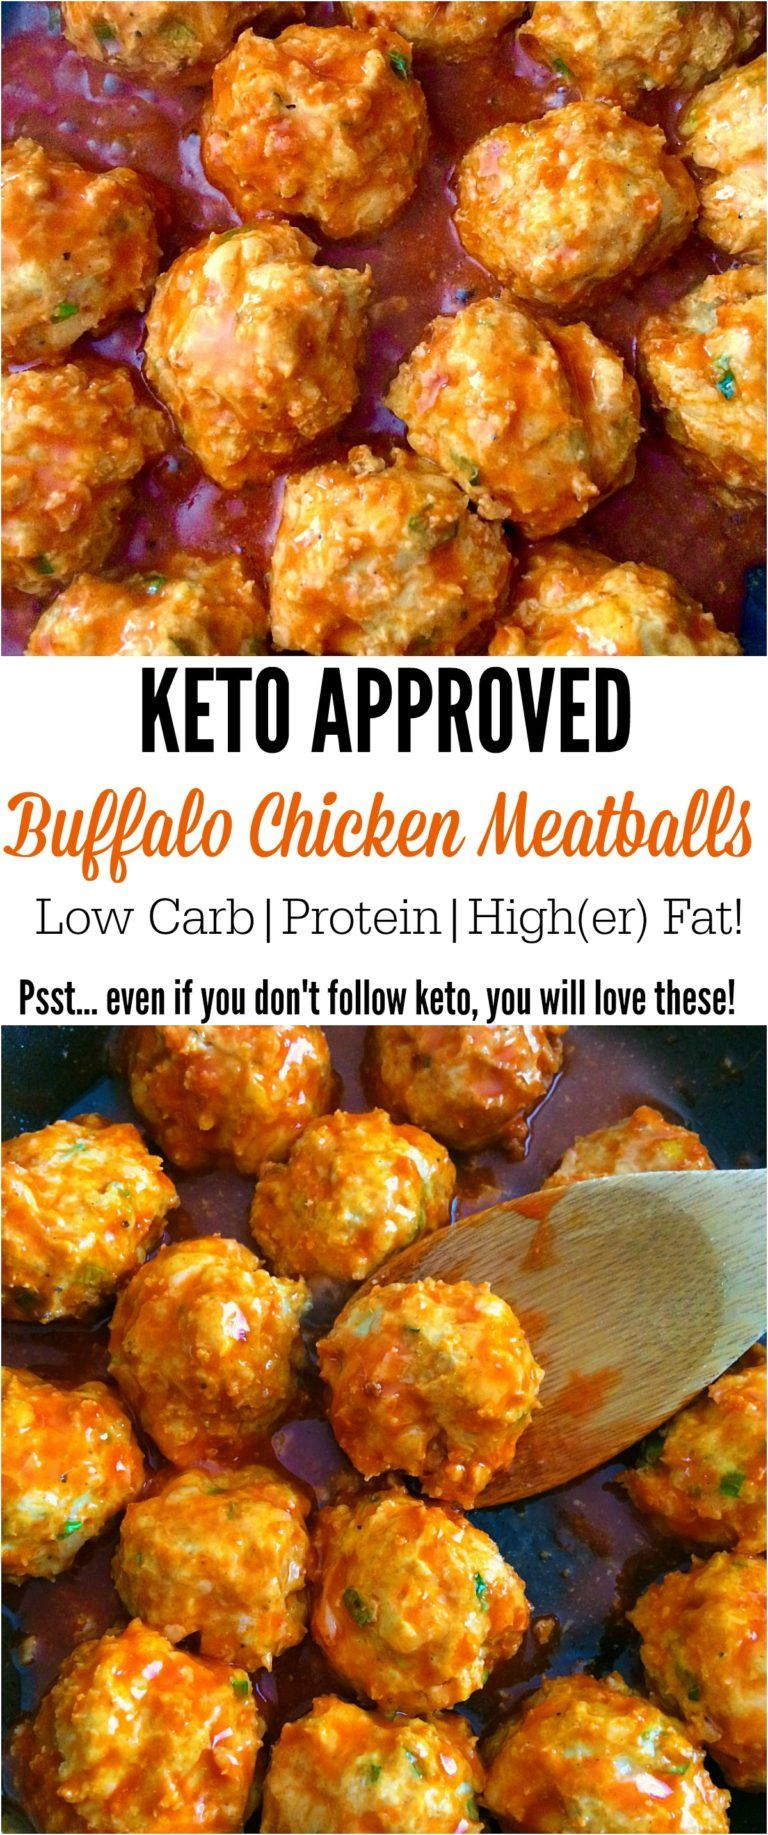 Easy Keto Recipes for Beginners - Best Keto Dinner Recipes. Are your looking for easy Keto recipes for Beginners? Here is a collection of the best Keto Dinner recipes under 30 minutes! #keto #ketorecipes #lowcarb #ketodiet #diet #recipes #food